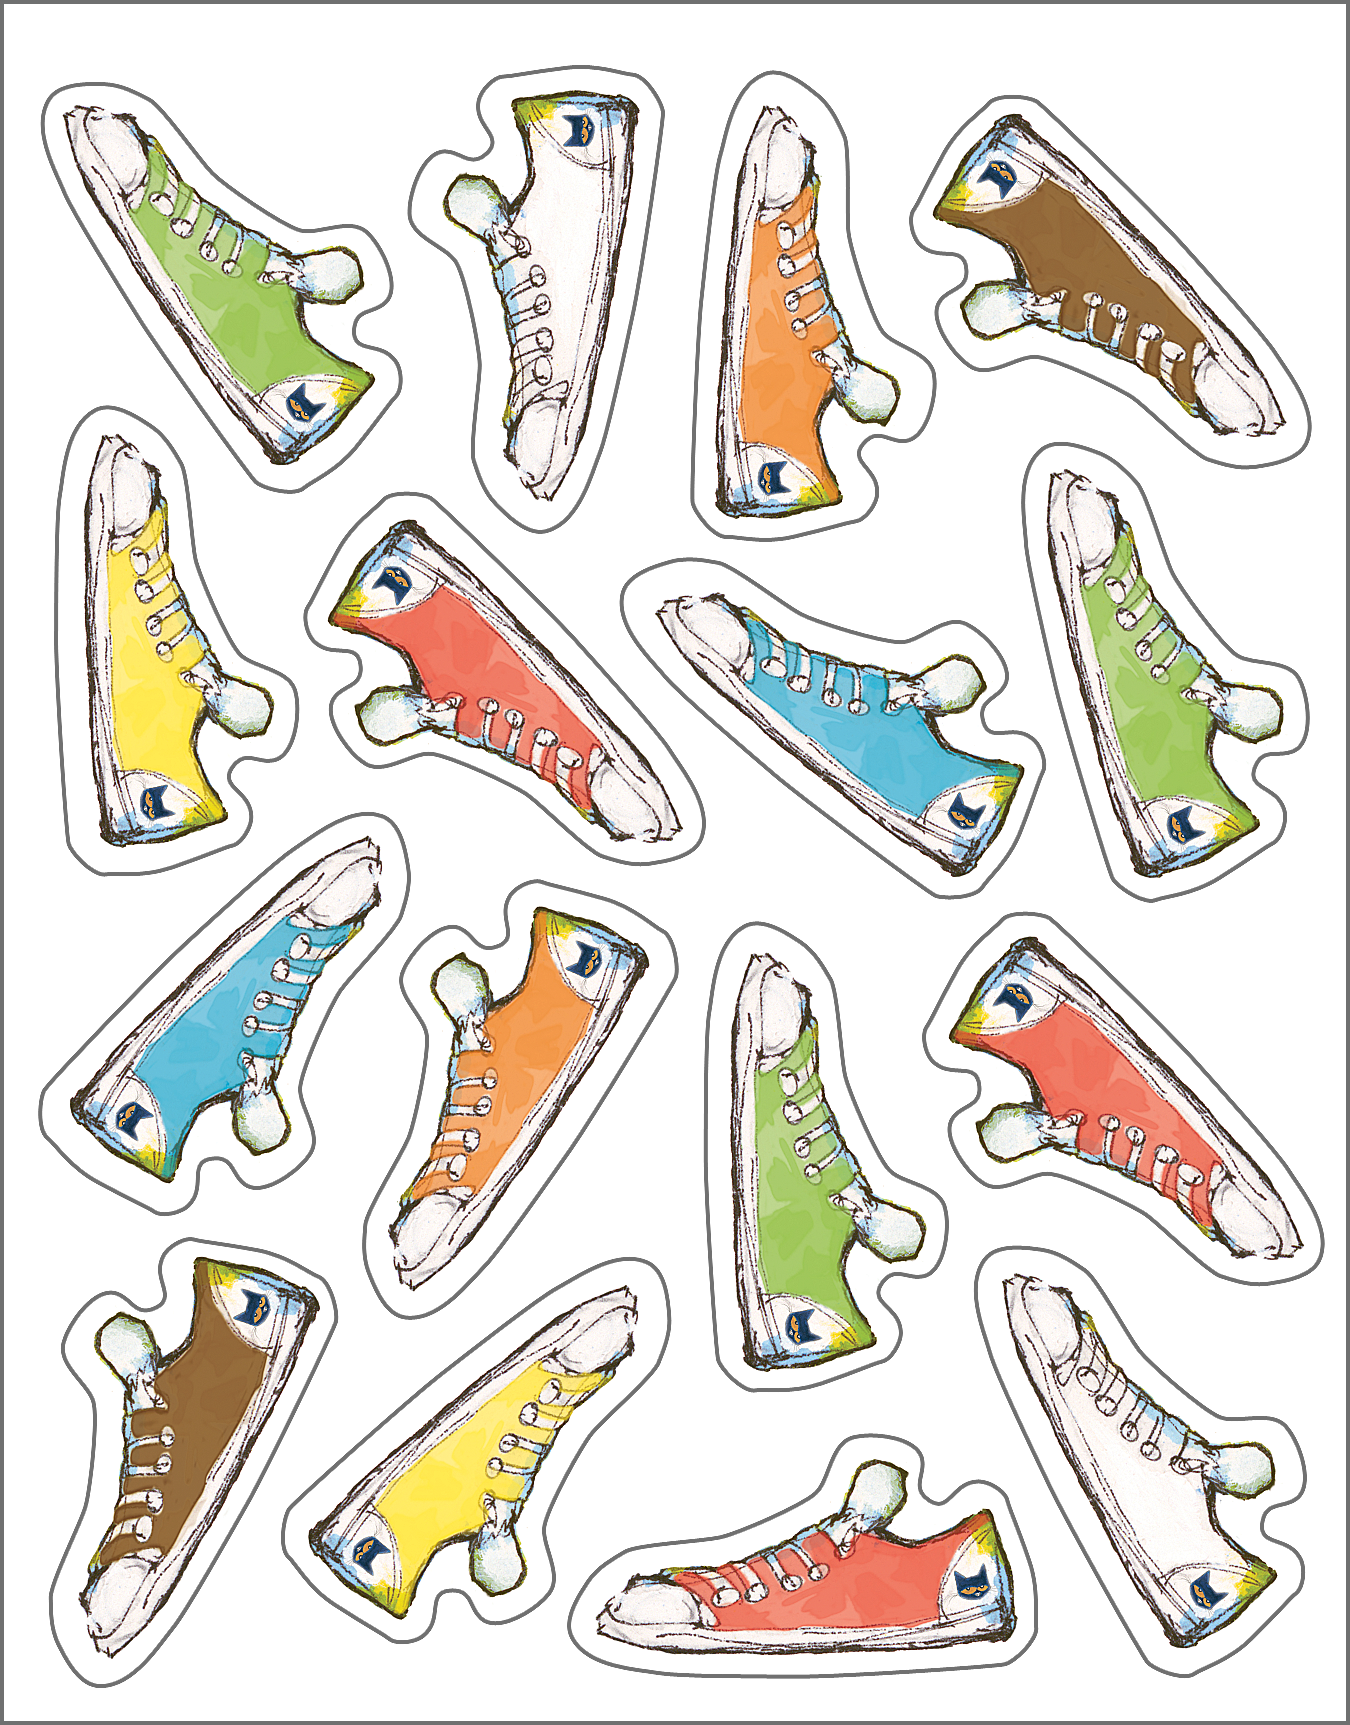 Pete the Cat¬ Groovy Shoes Stickers